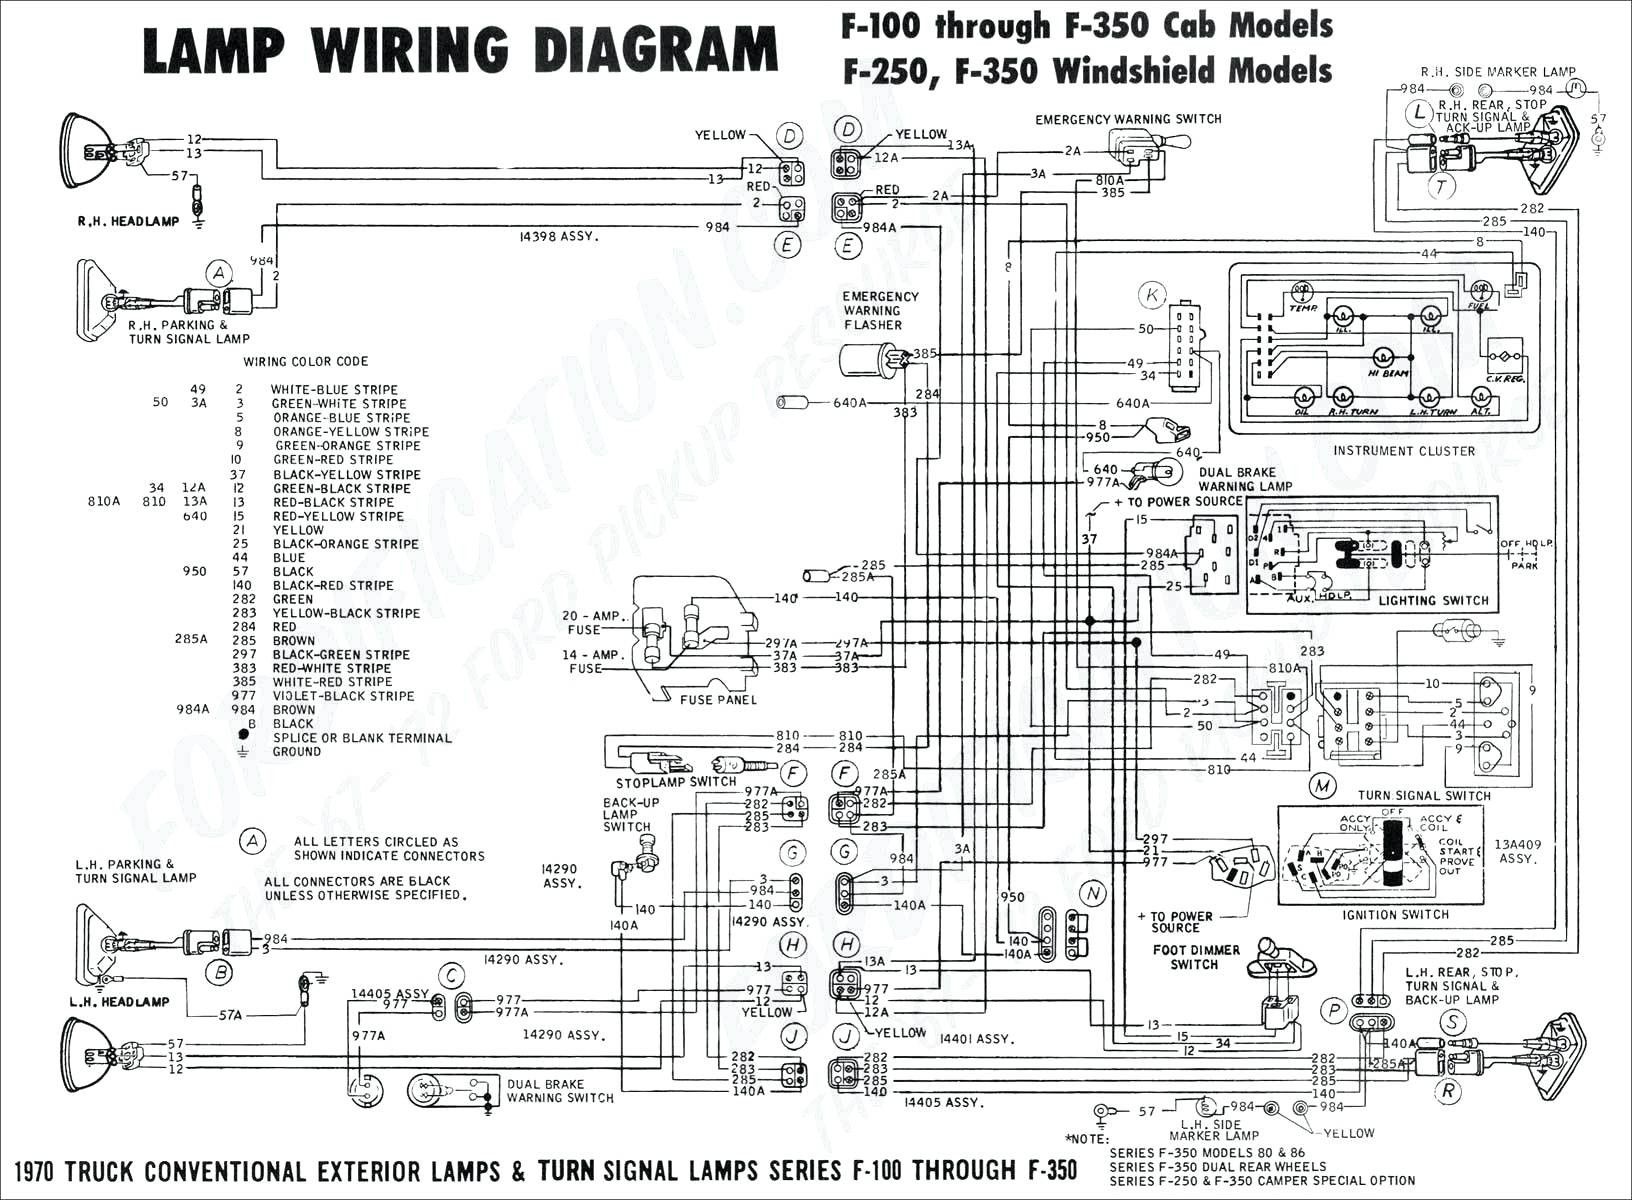 1997 ford Explorer Engine Diagram 97 ford Ranger Trailer Wiring Wiring Diagram Of 1997 ford Explorer Engine Diagram I Need the Wiring Diagram for A 1996 ford Explorer Radio 1997 Also